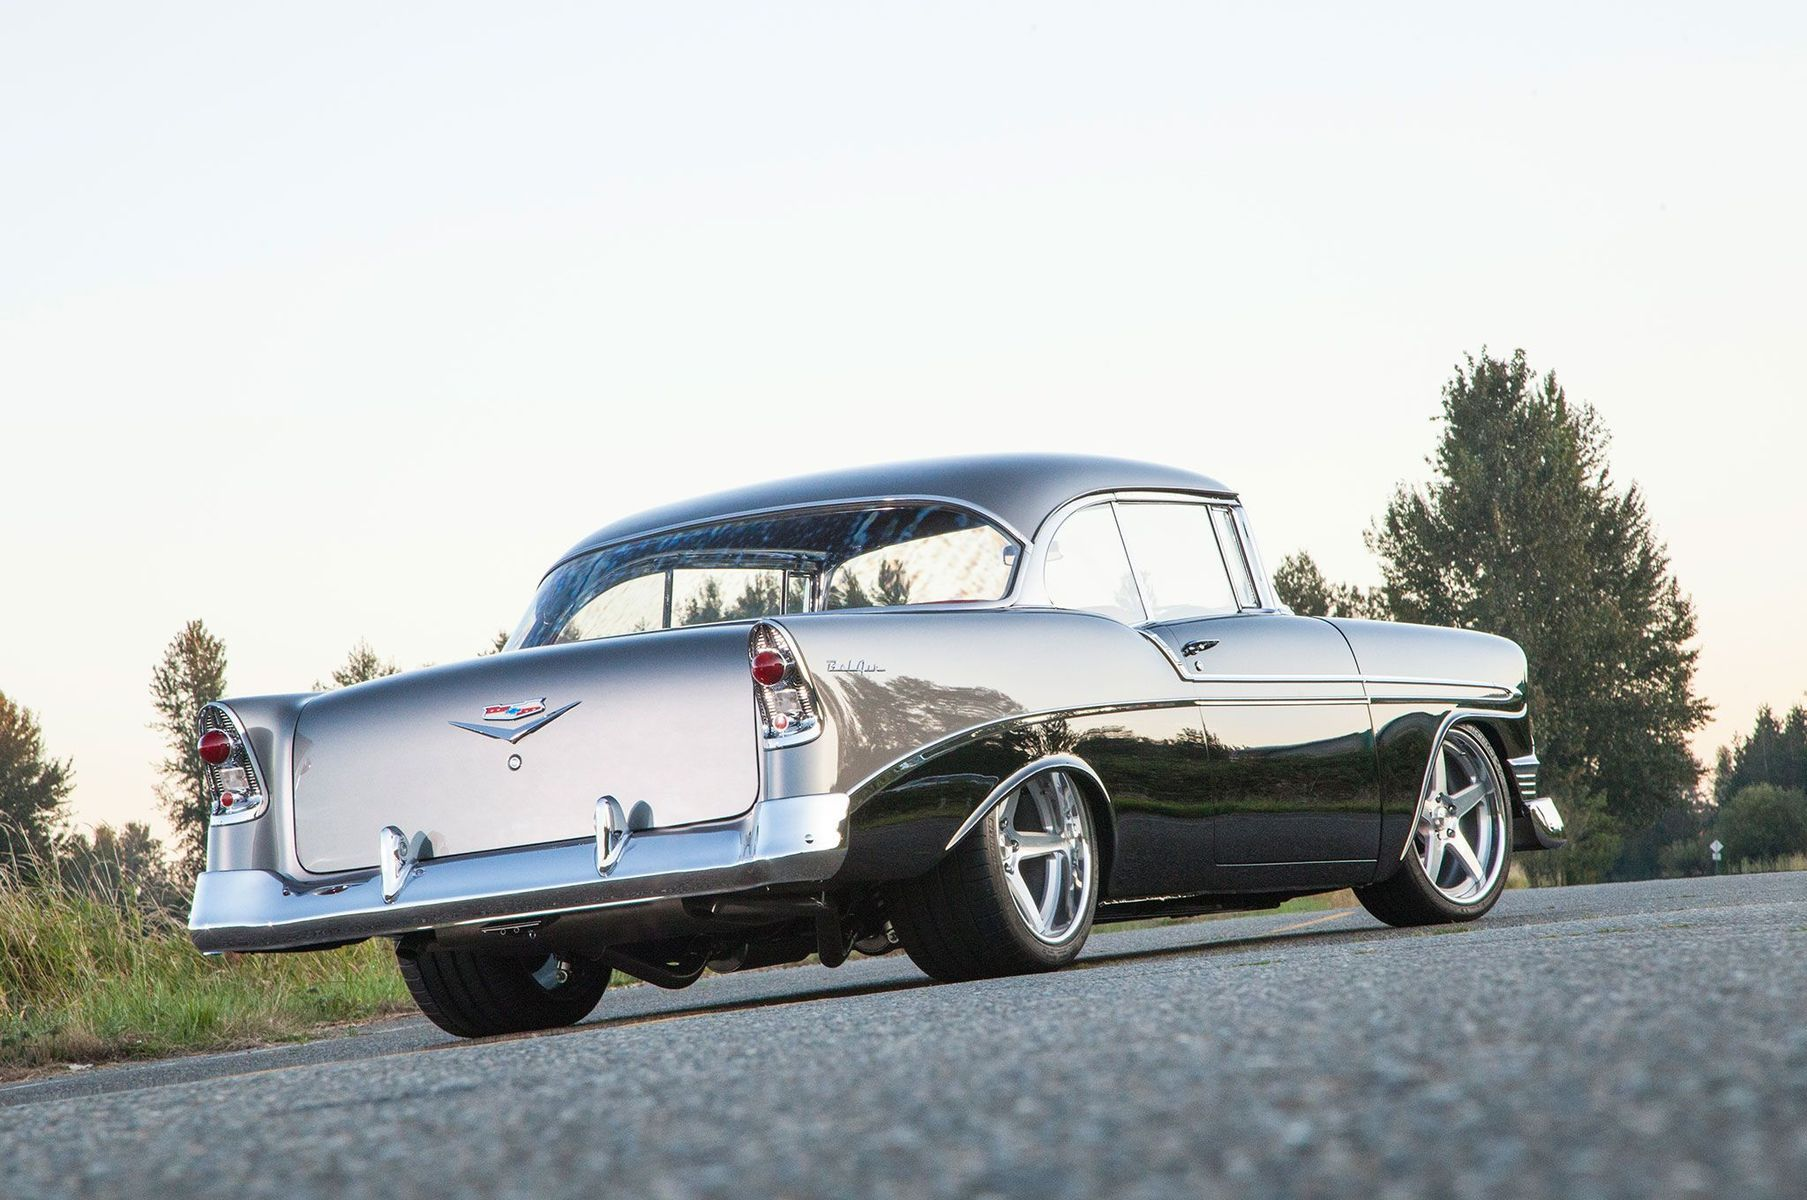 1956 Chevrolet Bel Air | Jeff Zirkle's Pro-Touring '56 Chevy Bel Air on Forgeline CF3C Wheels